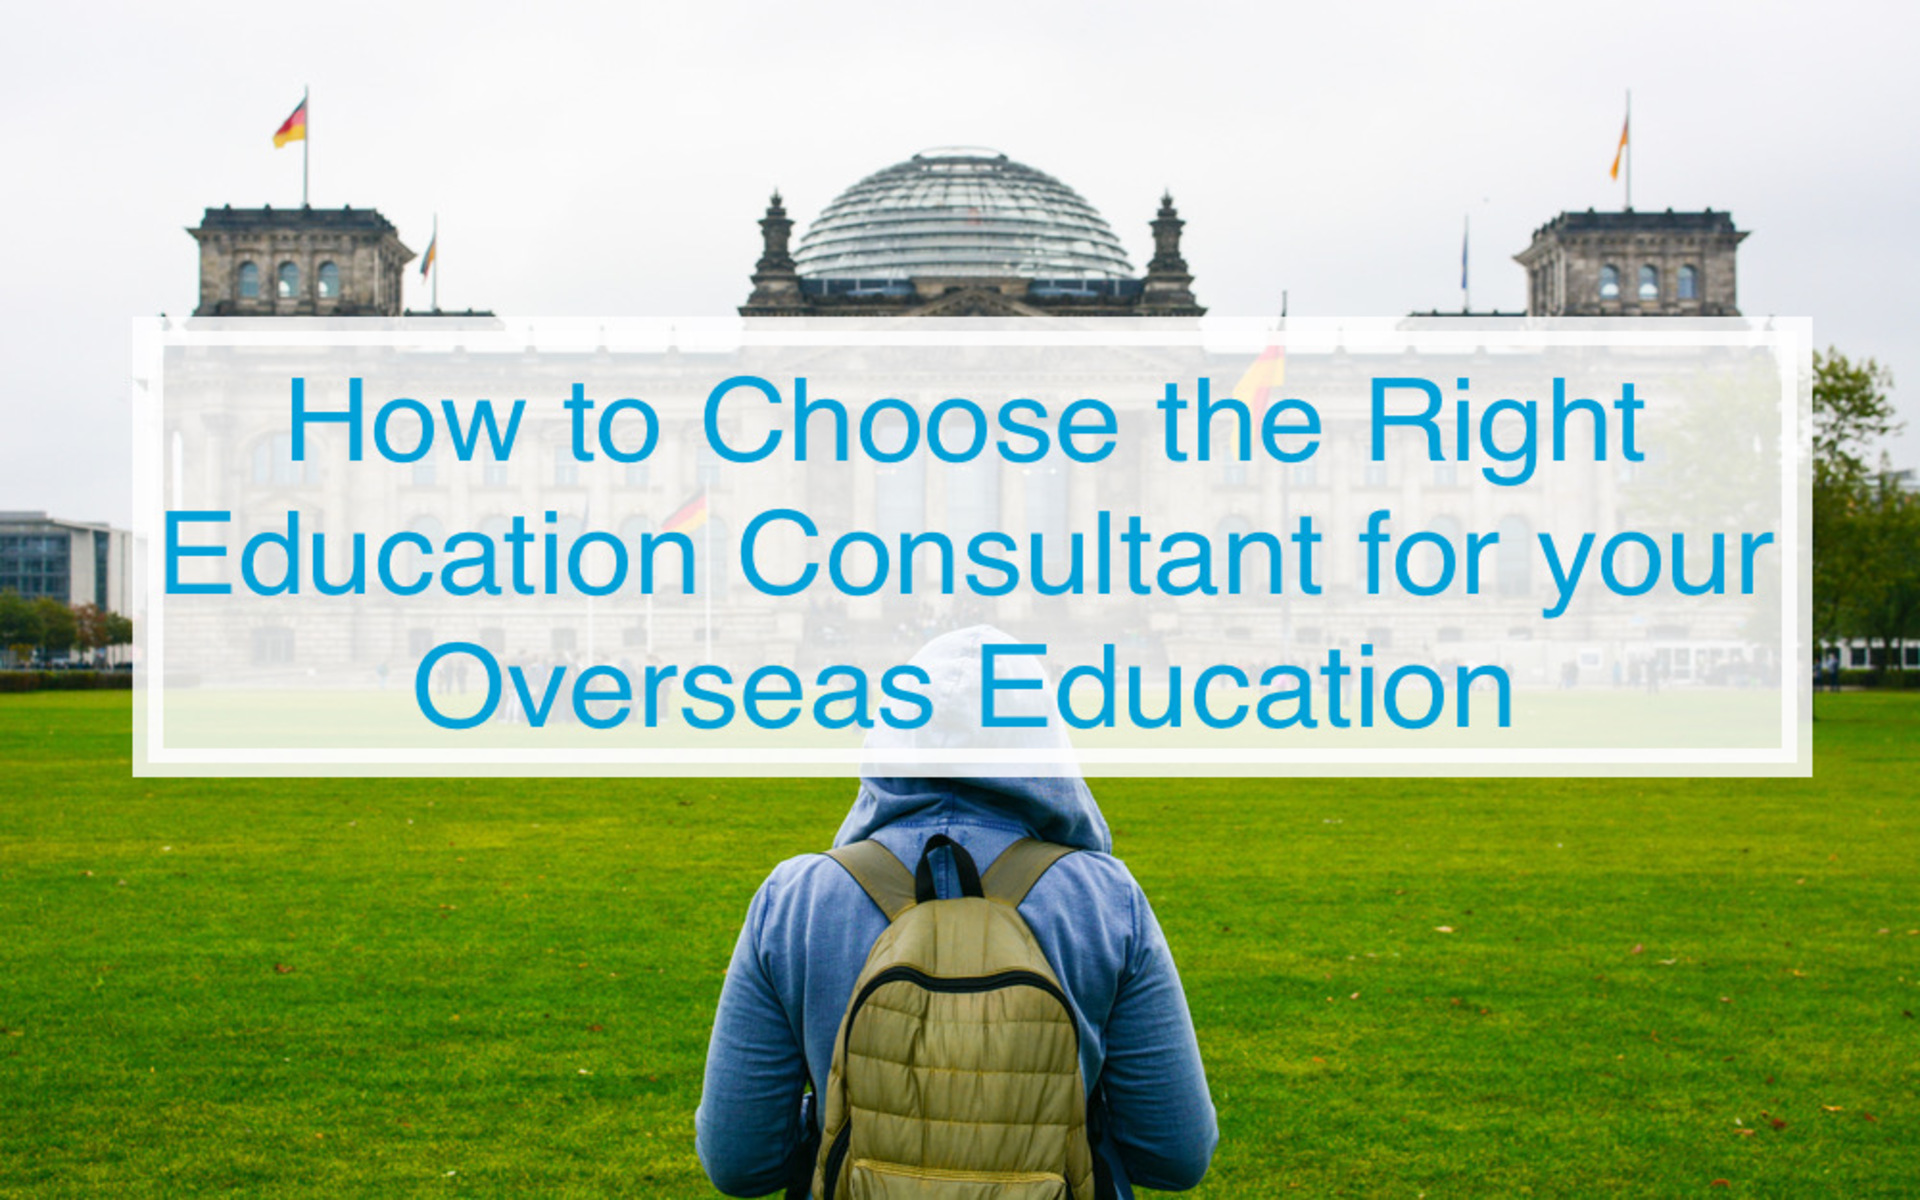 education consultant for your overseas education